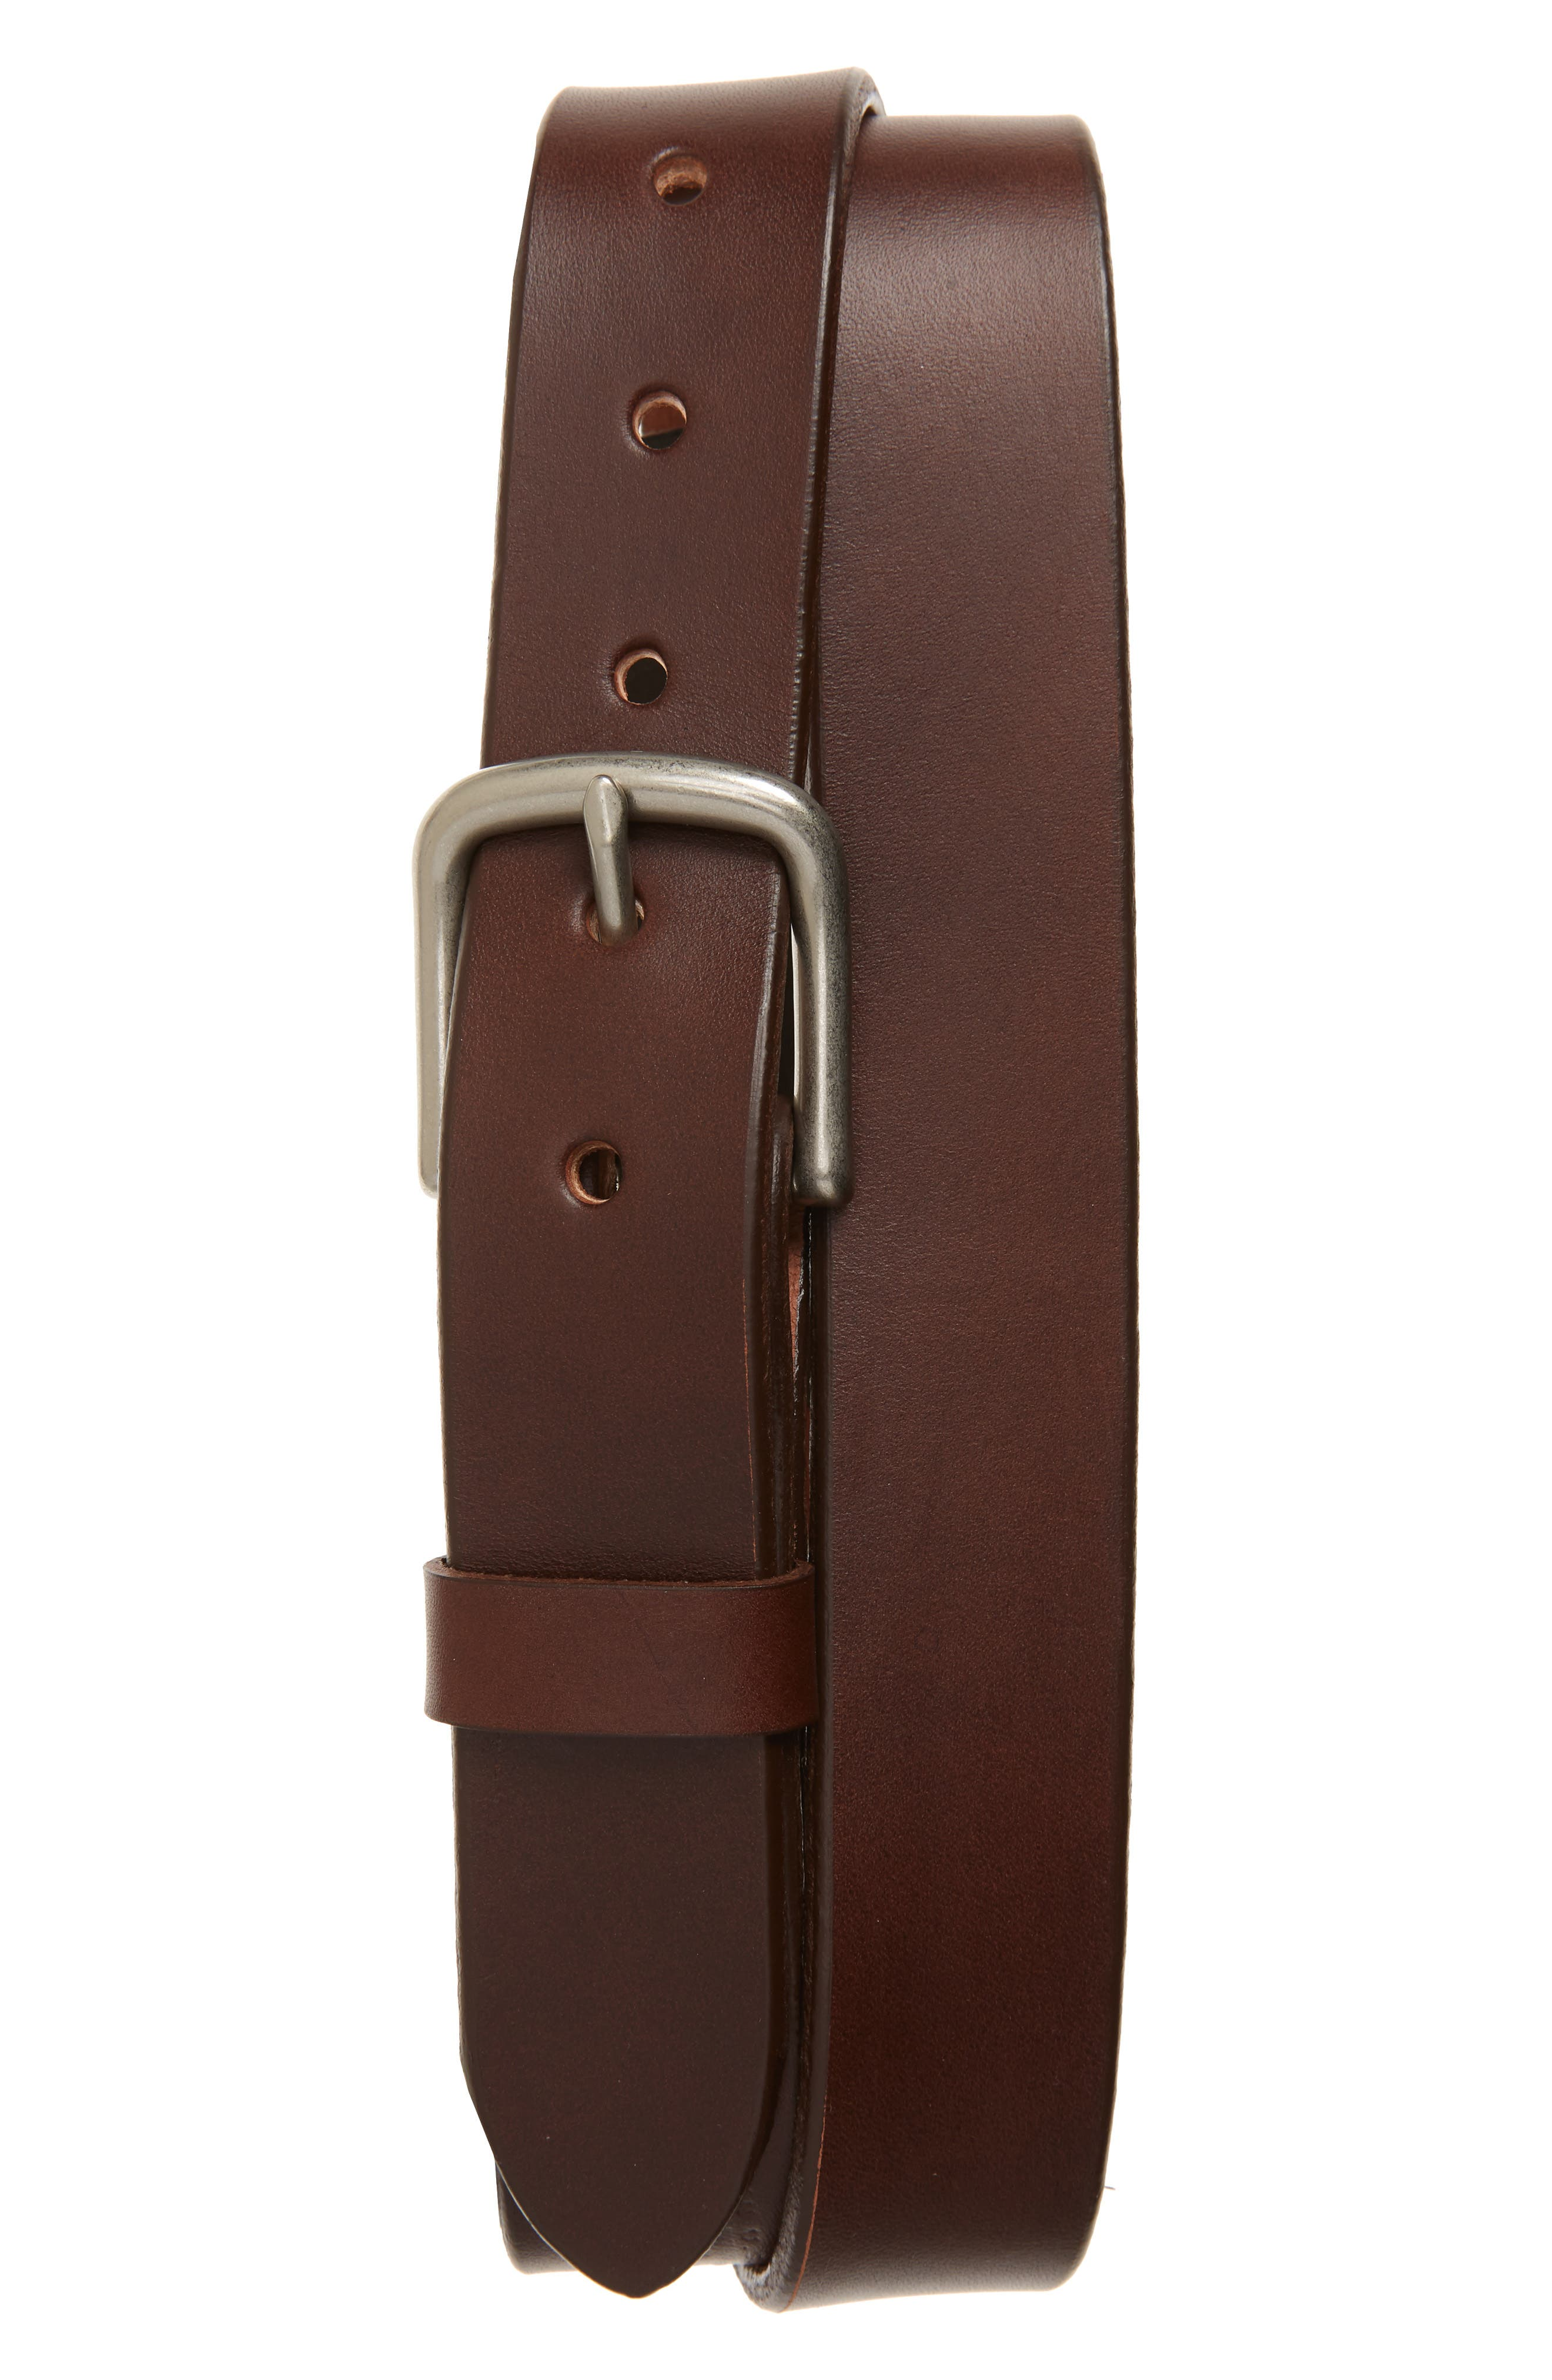 TANNER GOODS CLASSIC LEATHER BELT